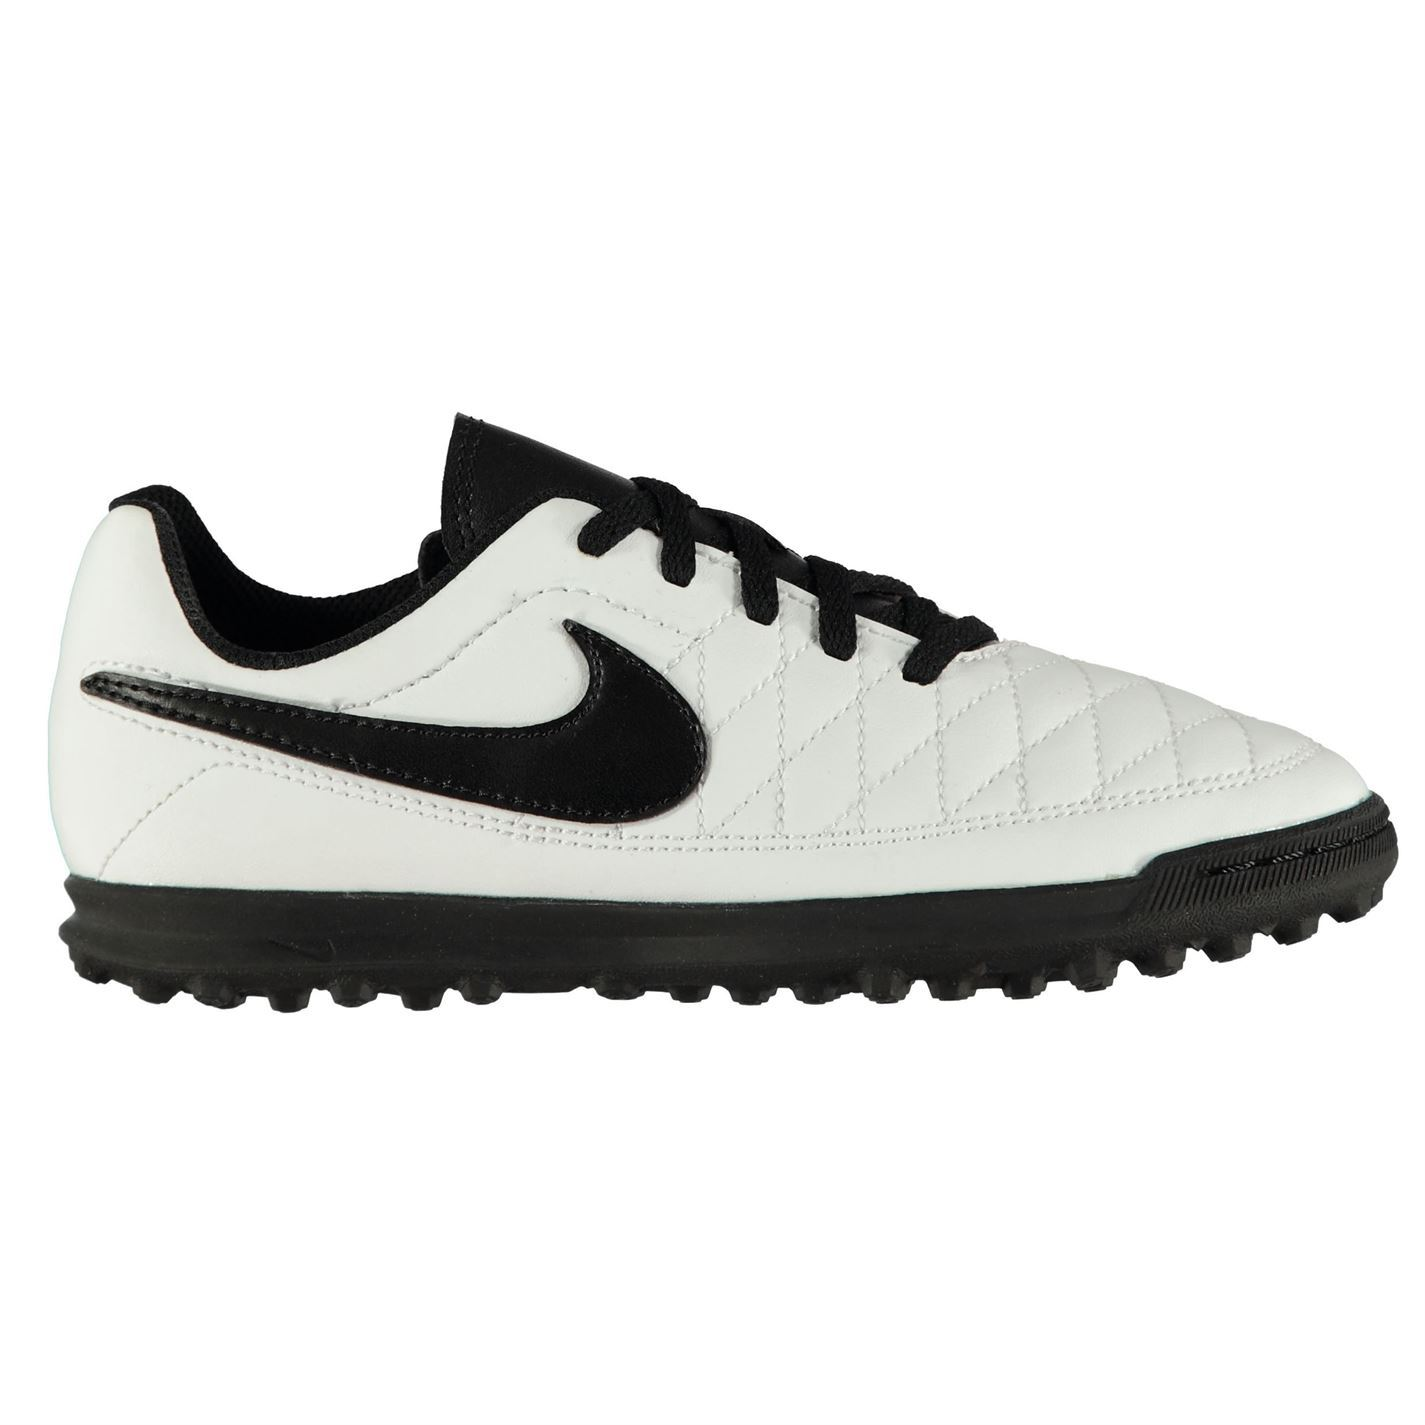 Nike-majestry-Astro-Turf-Football-Baskets-enfant-foot-baskets-chaussures miniature 14